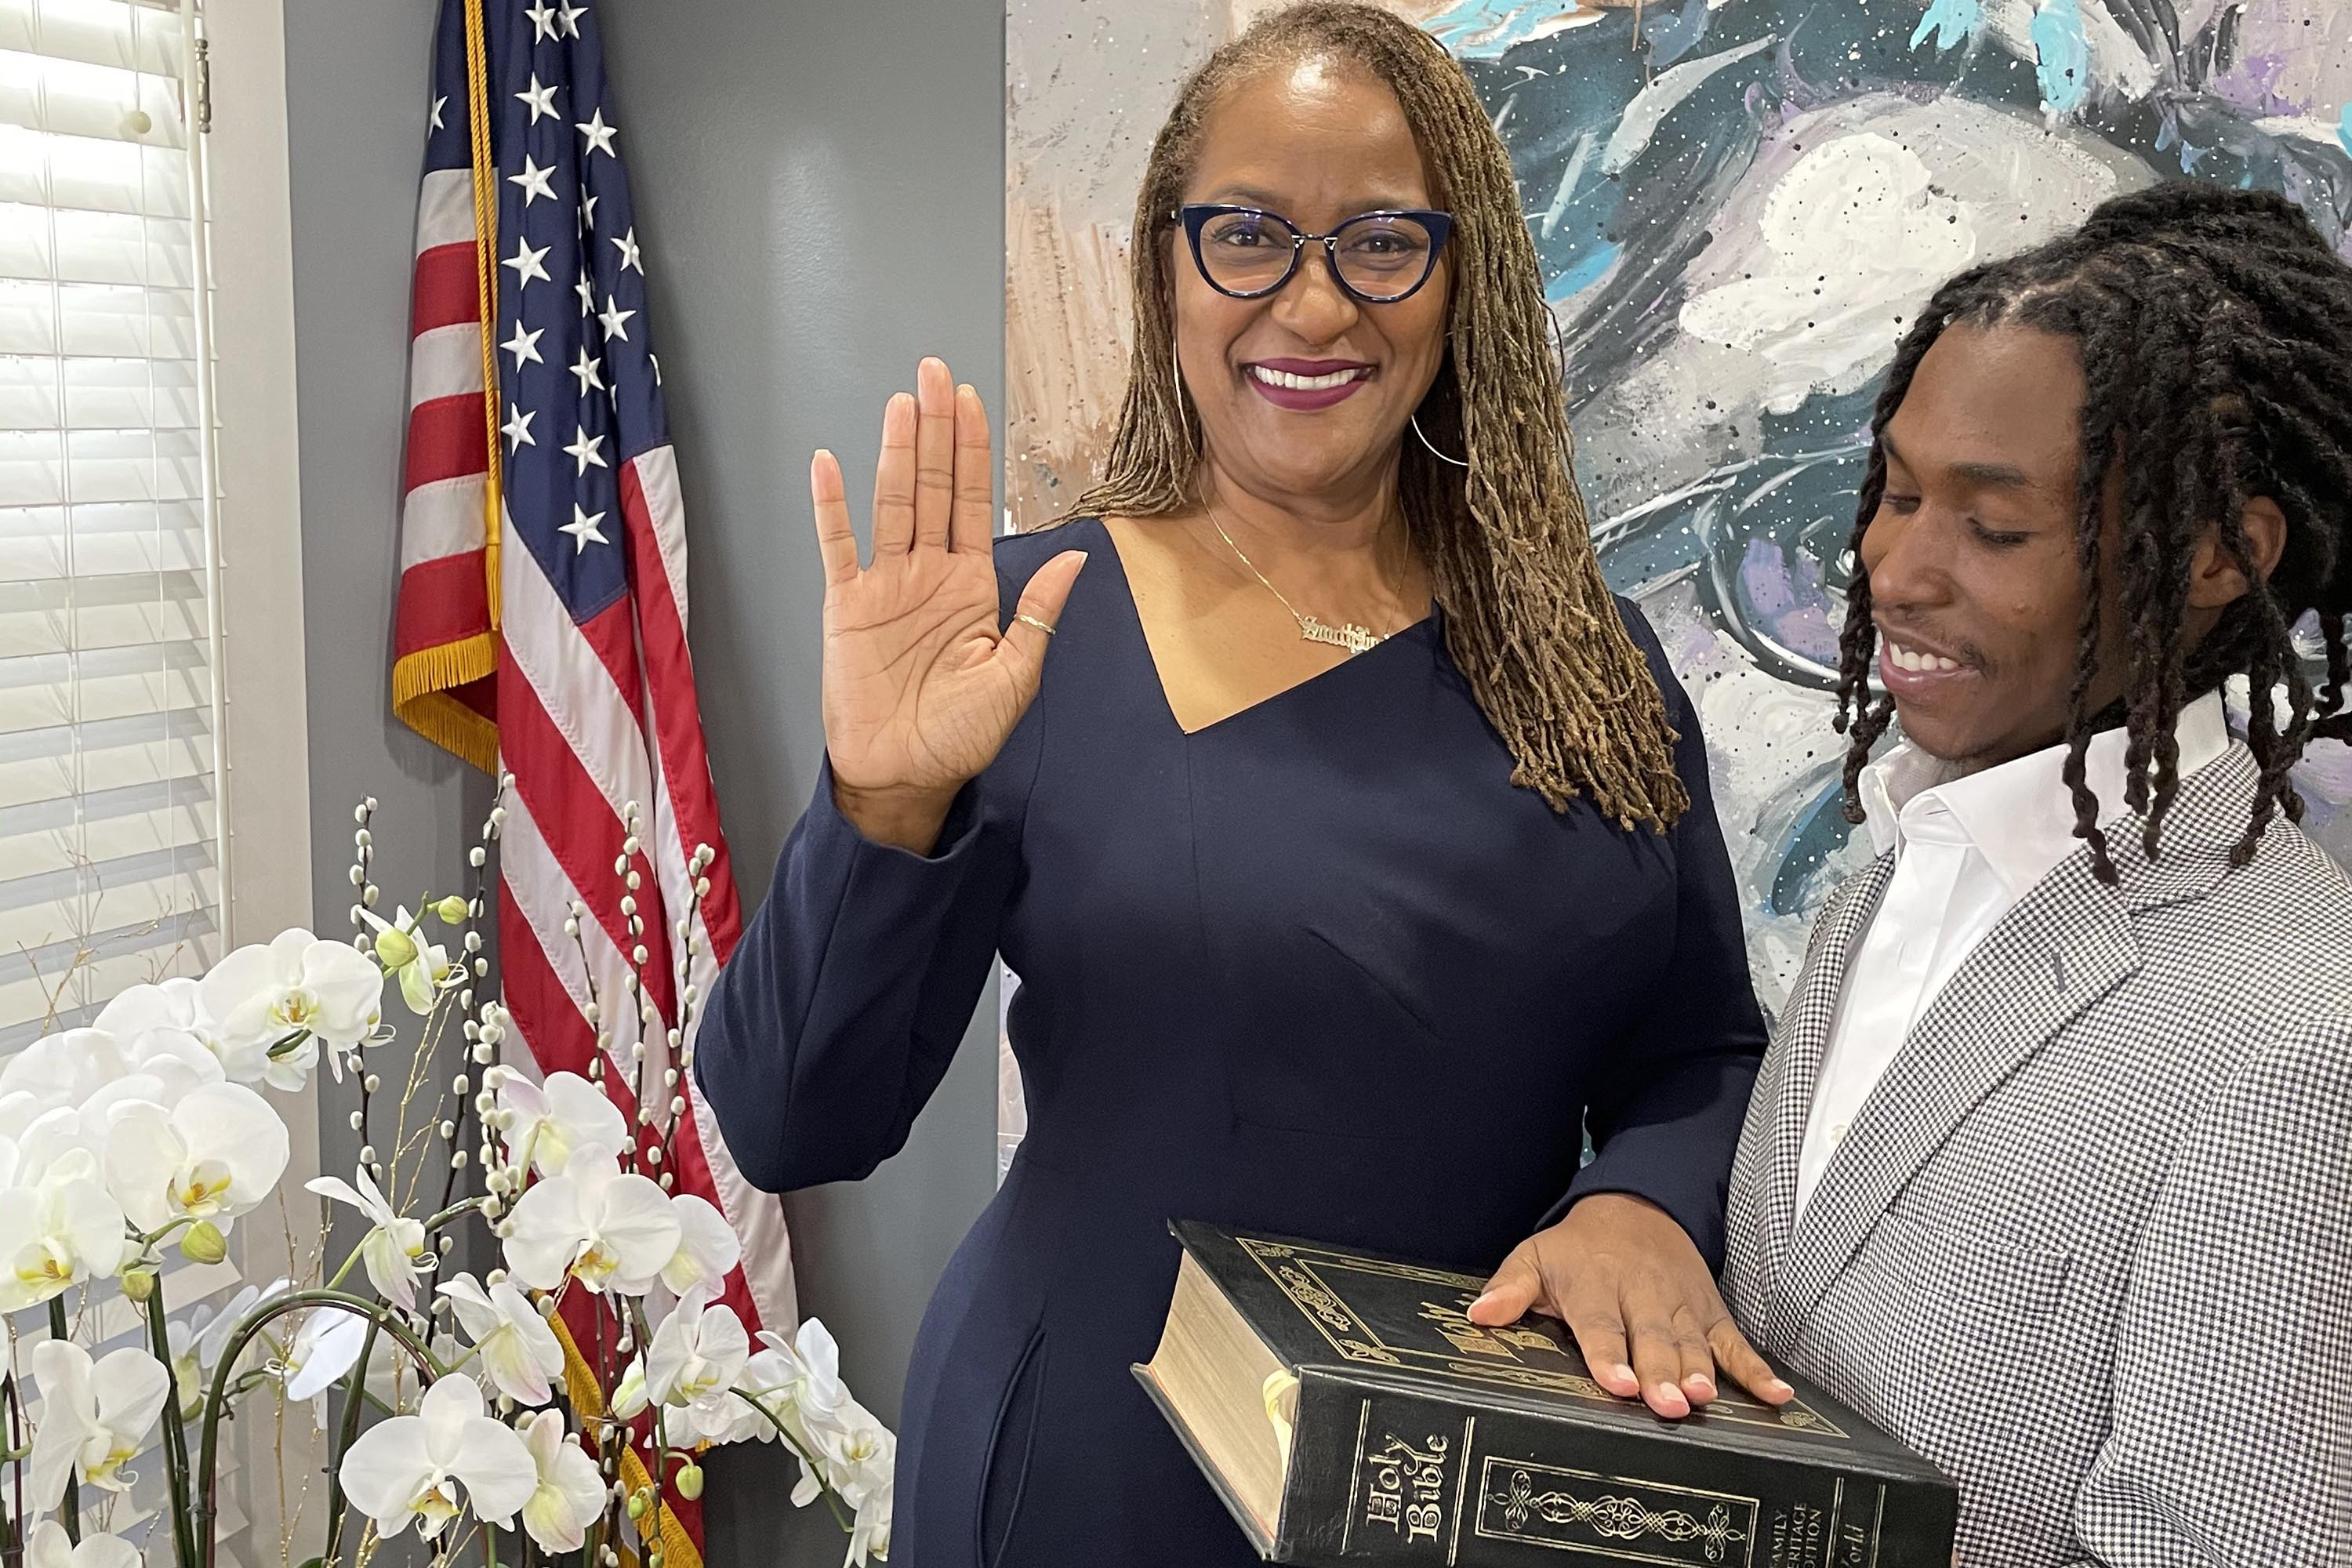 District 2 – Supervisor Holly J. Mitchell<br>  <b>Dec 6, 2020 – Oath of office for Supervisor Holly J. Mitchell.</b><br>   <i>Photo by Board of Supervisors</i>